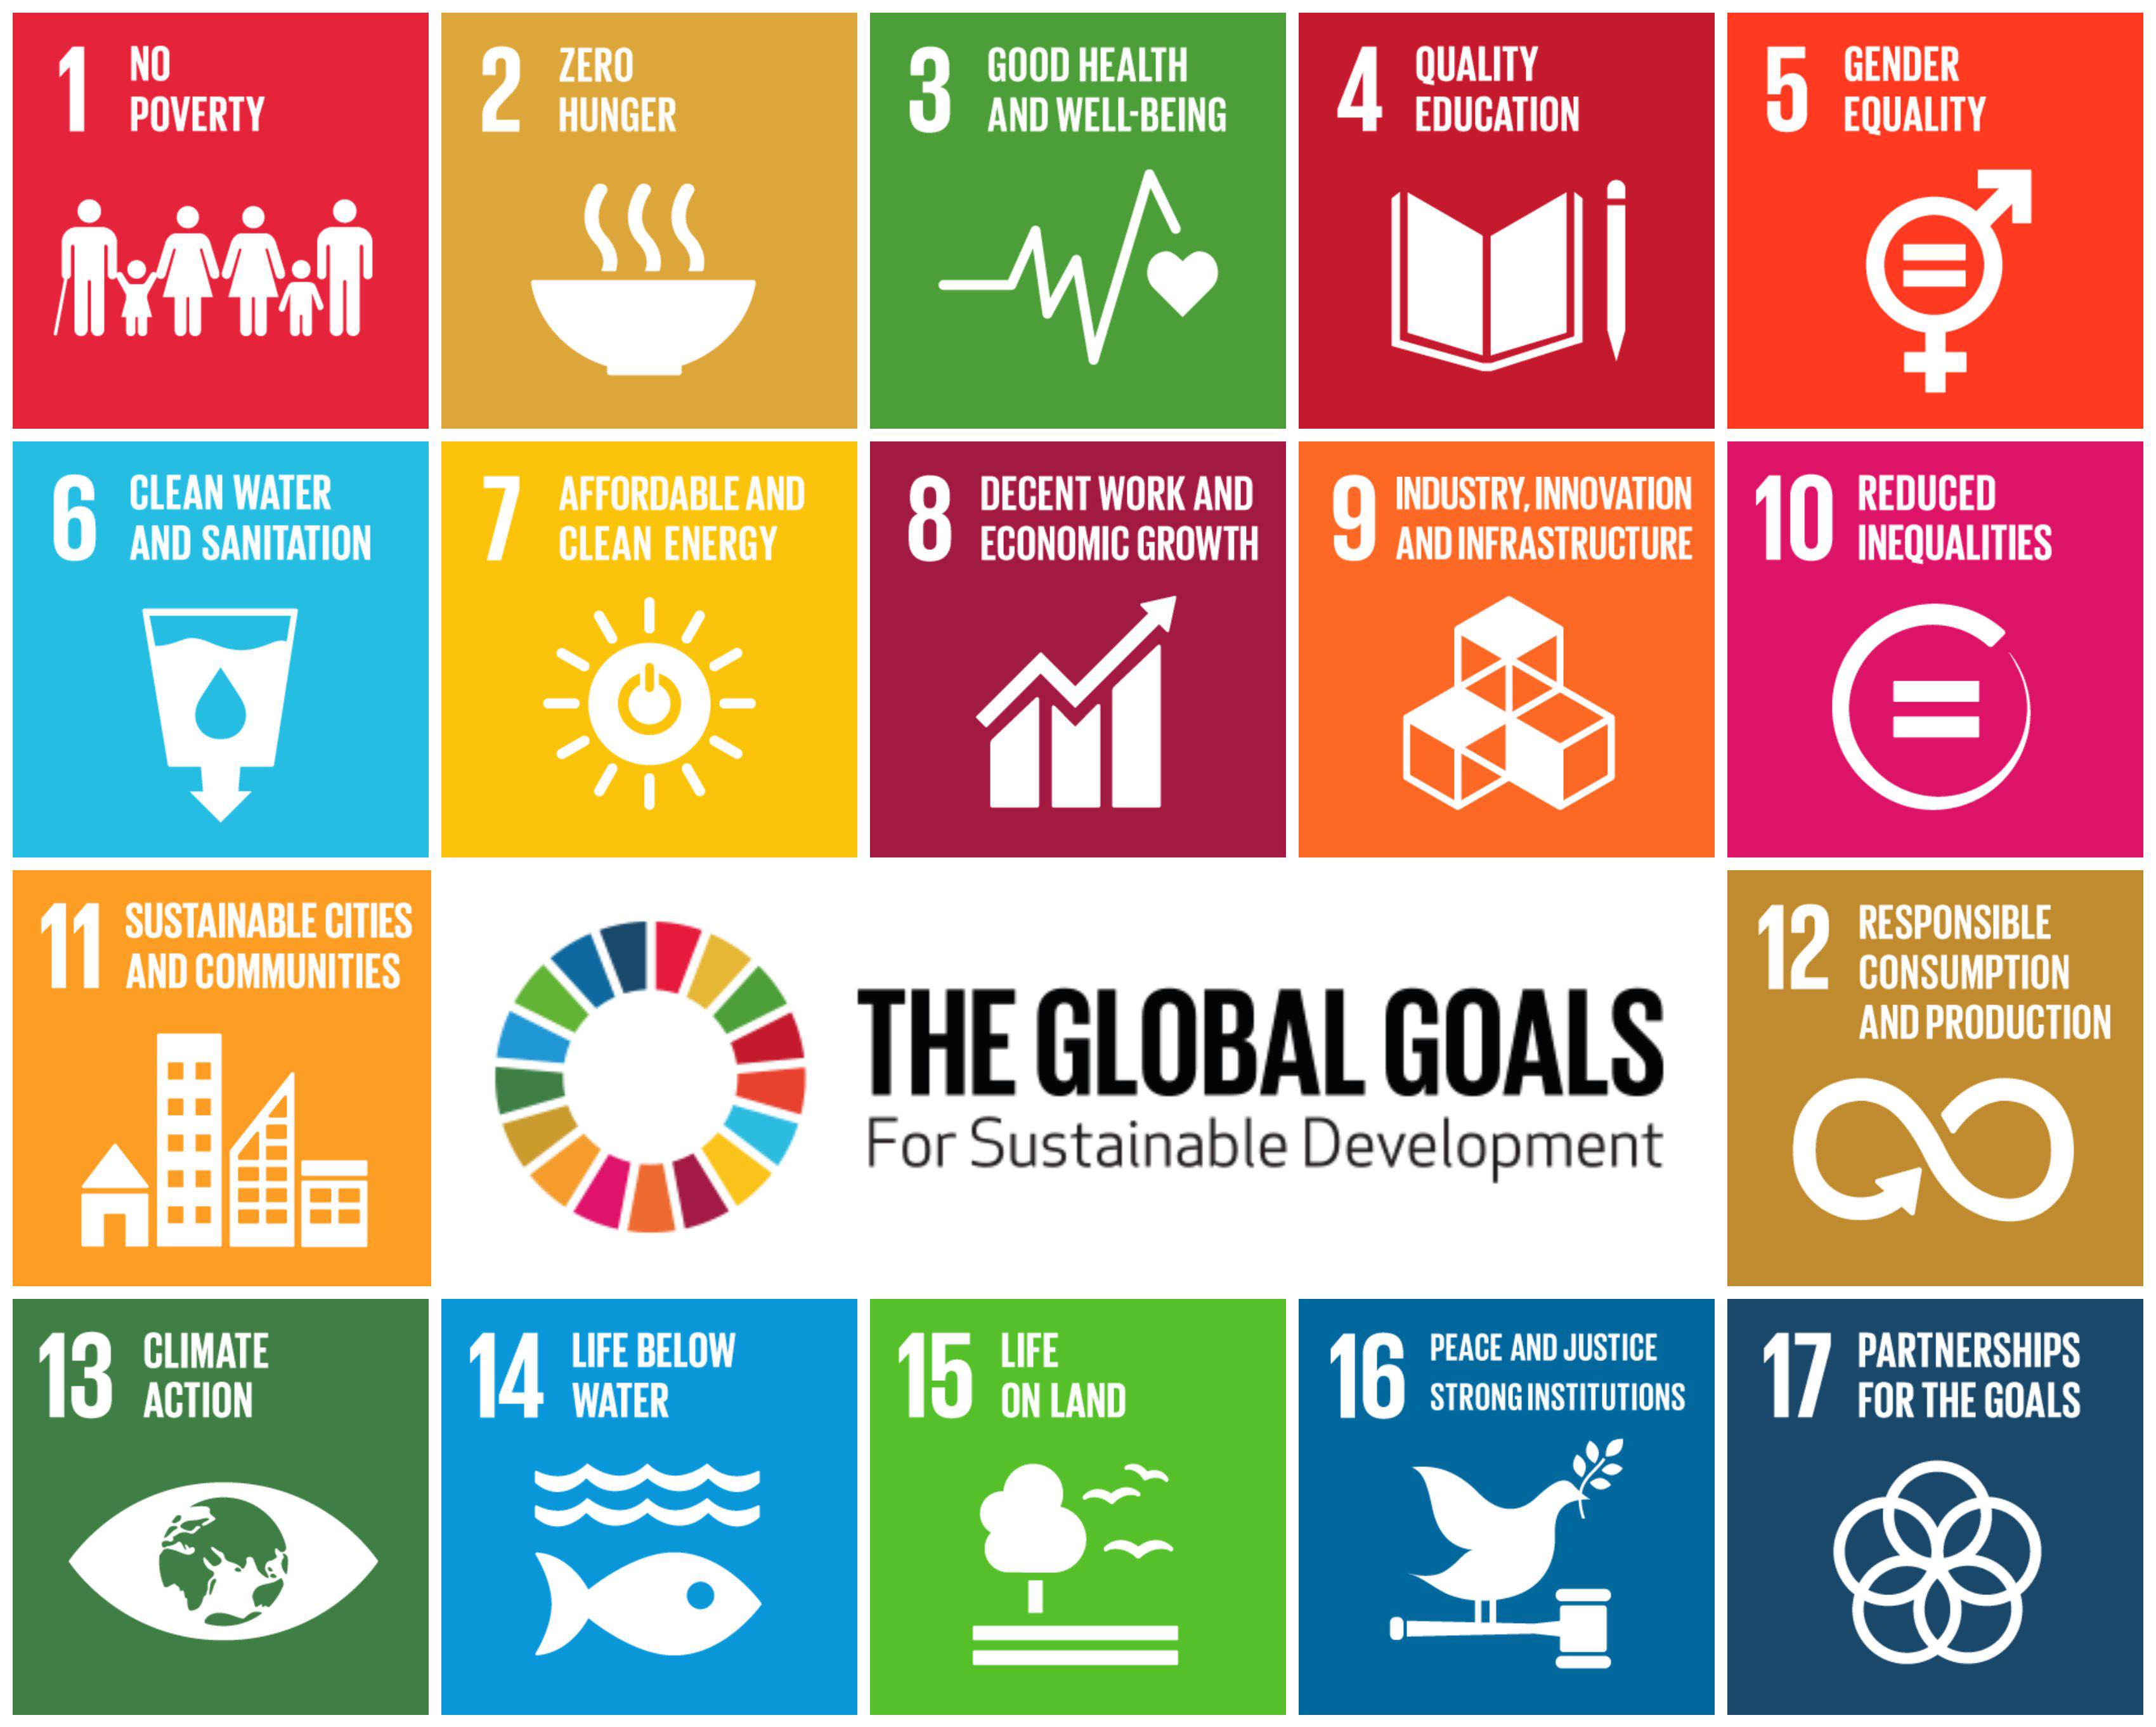 verdensmlene global goals.jpg - 1.65 MB